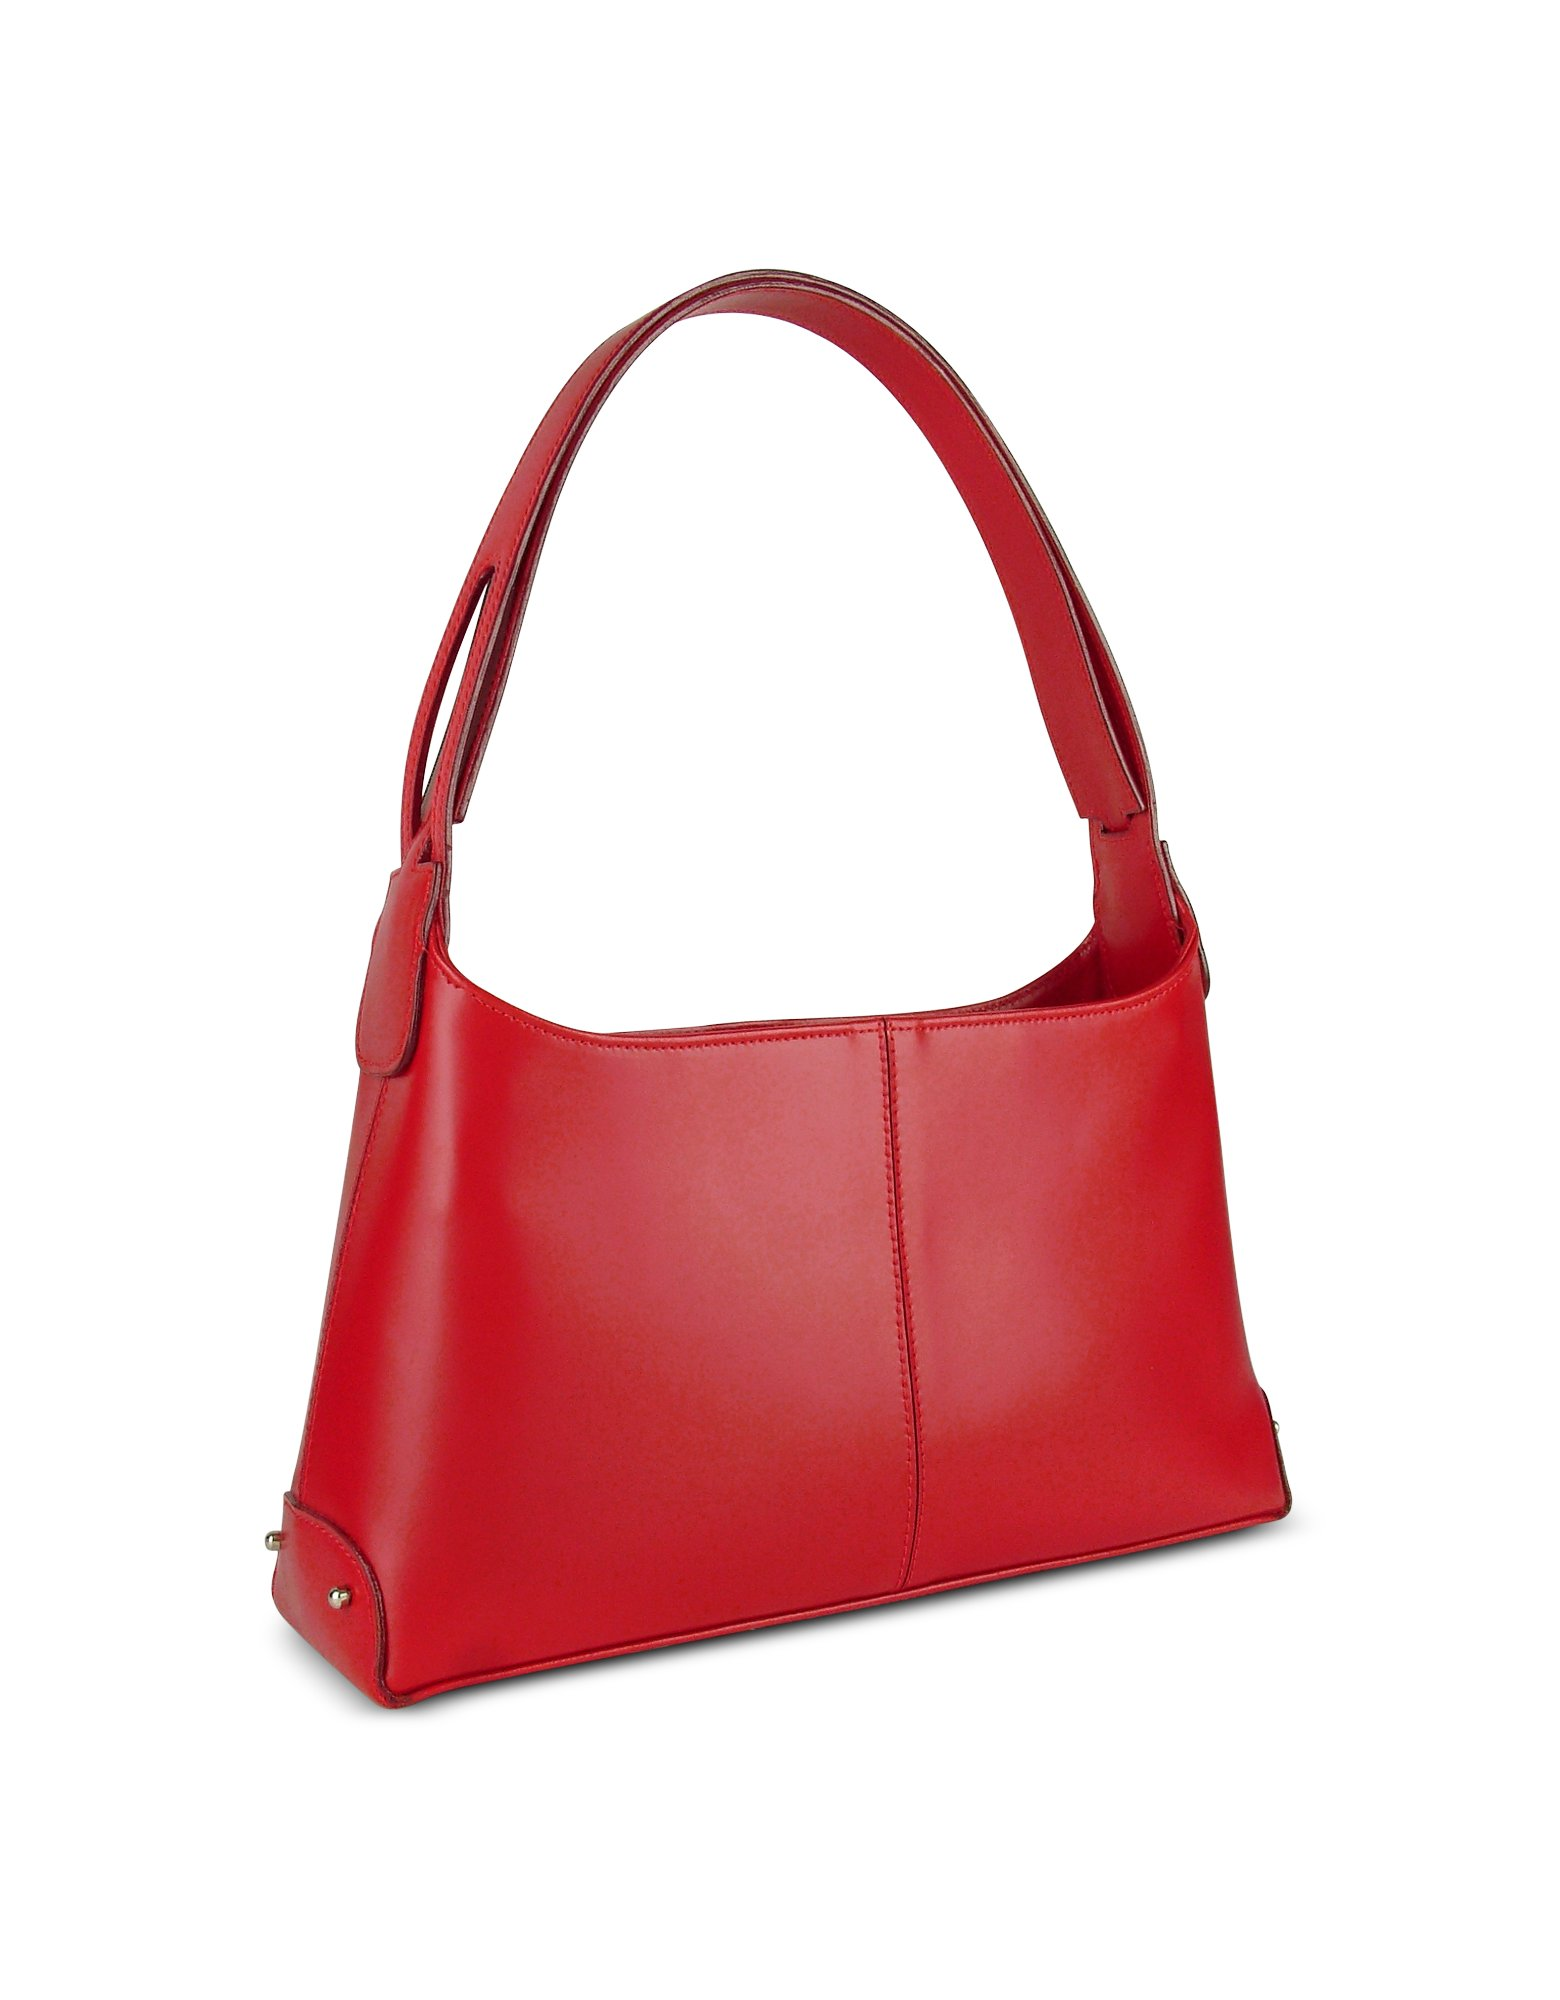 e6607c7a80943 Lyst - Fontanelli Classy Red Italian Leather Handbag in Red